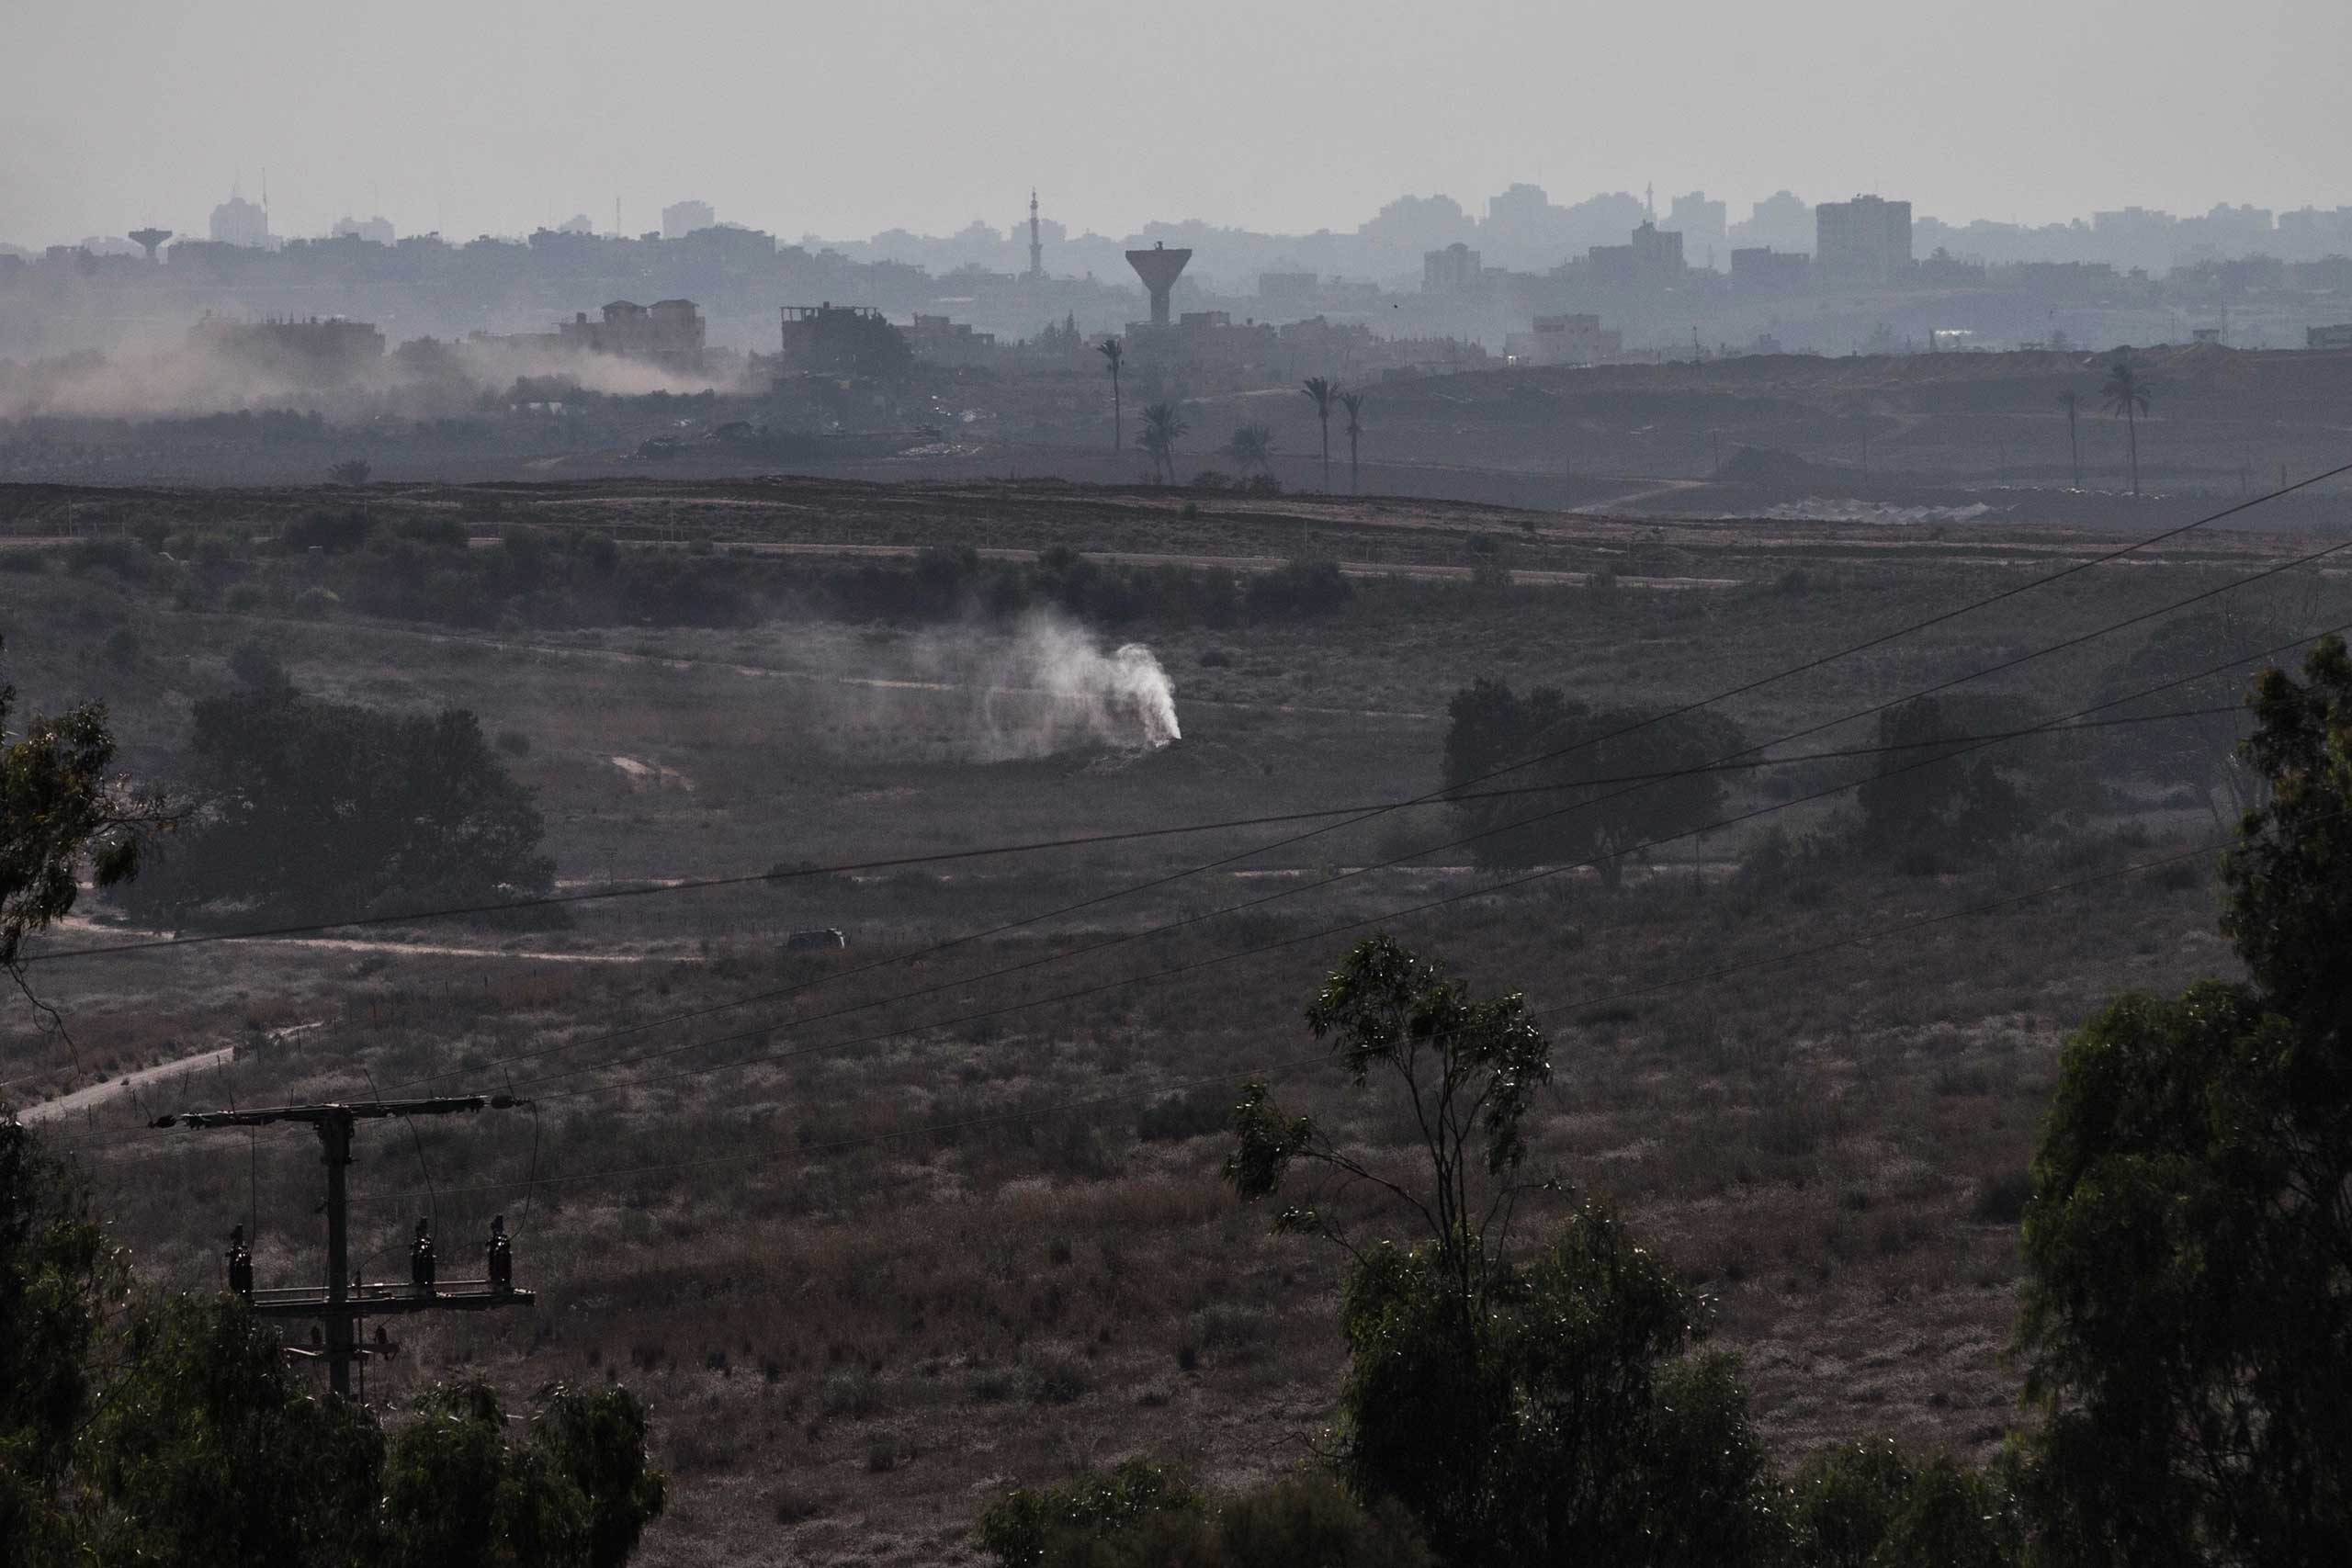 Smoke pours out of the ground due to an alleged campaign by the Israeli military to fill tunnels originating in Gaza with smoke to discover entrances into Israel near Sderot, Israel, July 23, 2014.